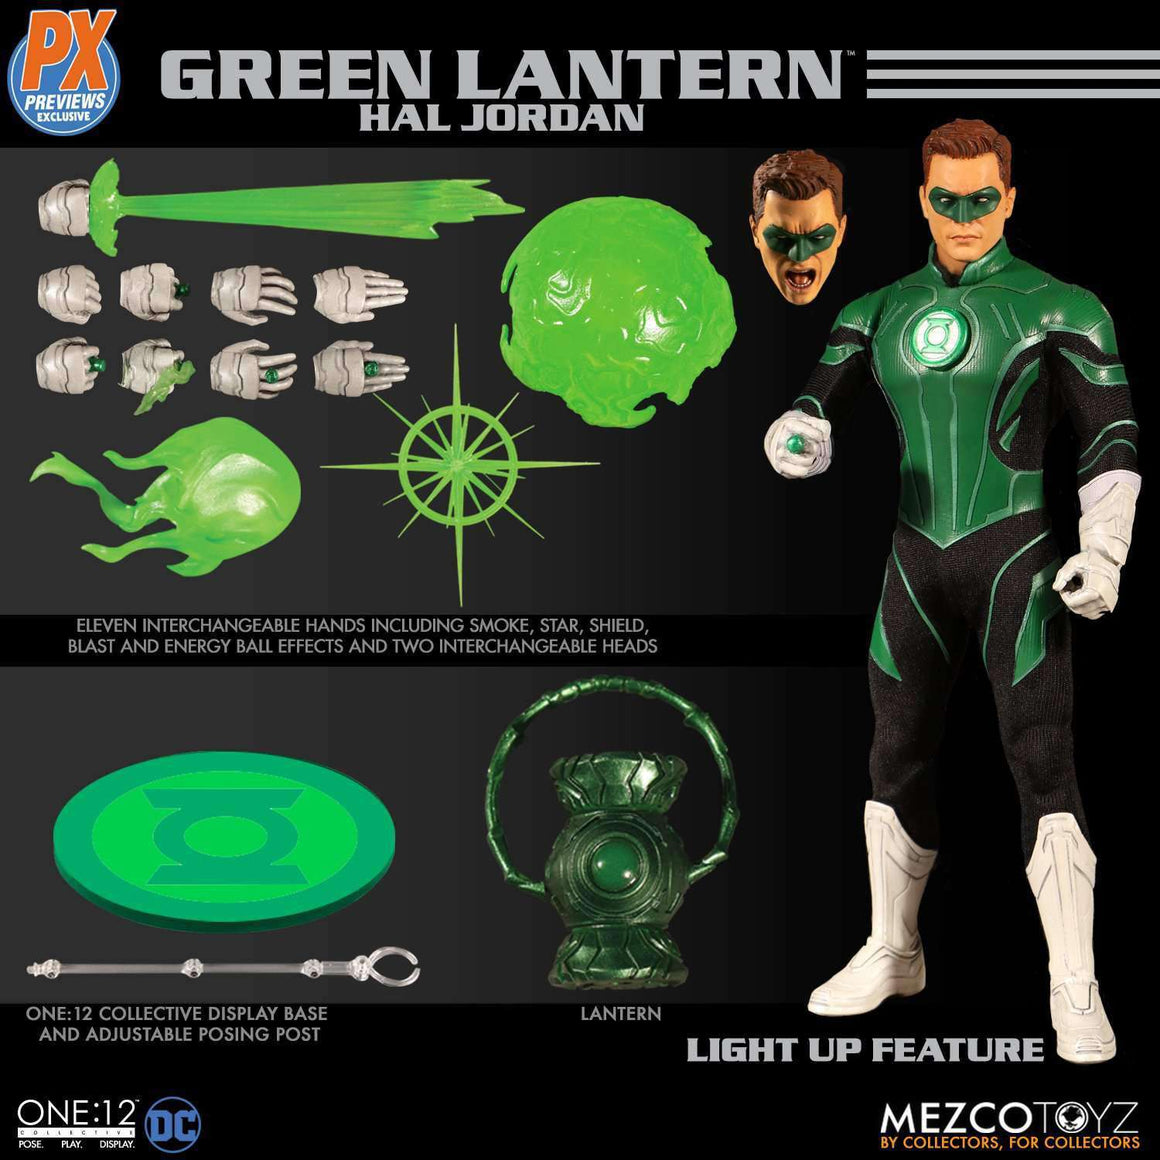 DC Comics One:12 Collective Green Lantern (Hal Jordan) PX Exclusive - SEPTEMBER 2019